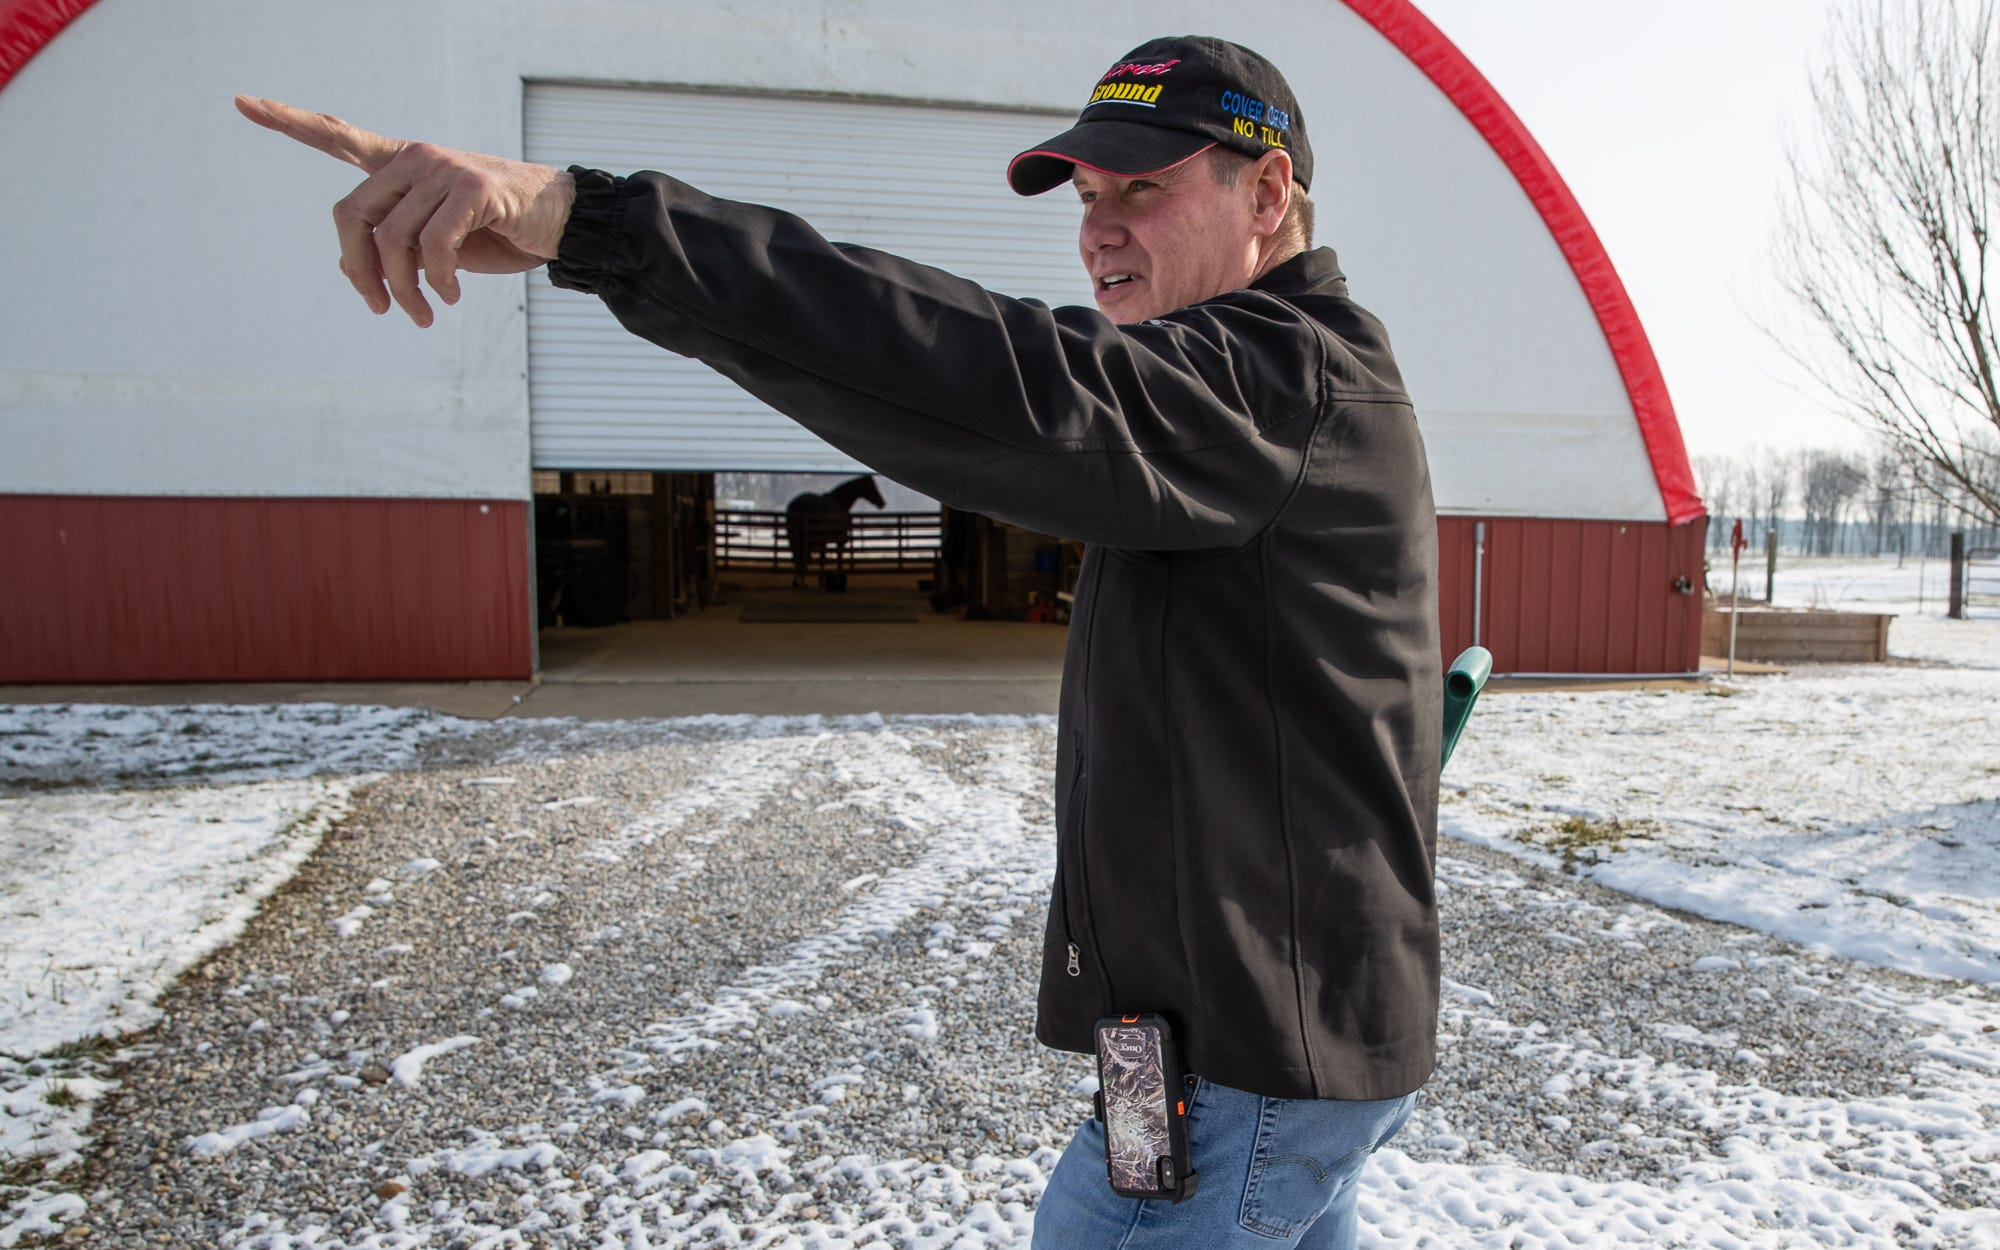 """""""My definition of regenerative farming is you have to take everything away, all inputs are gone,"""" said Rick Clark, a fifth generation farmer in Williamsport, Ind. """"Tillage, chemicals, fertilizer, manure, everything is taken away and we're now working on a symbiotic relationship with Mother Nature."""" Clark says he'll never go back to the way he used to farm his land and says he's saving $800,000 a year in inputs and other farm expenses."""